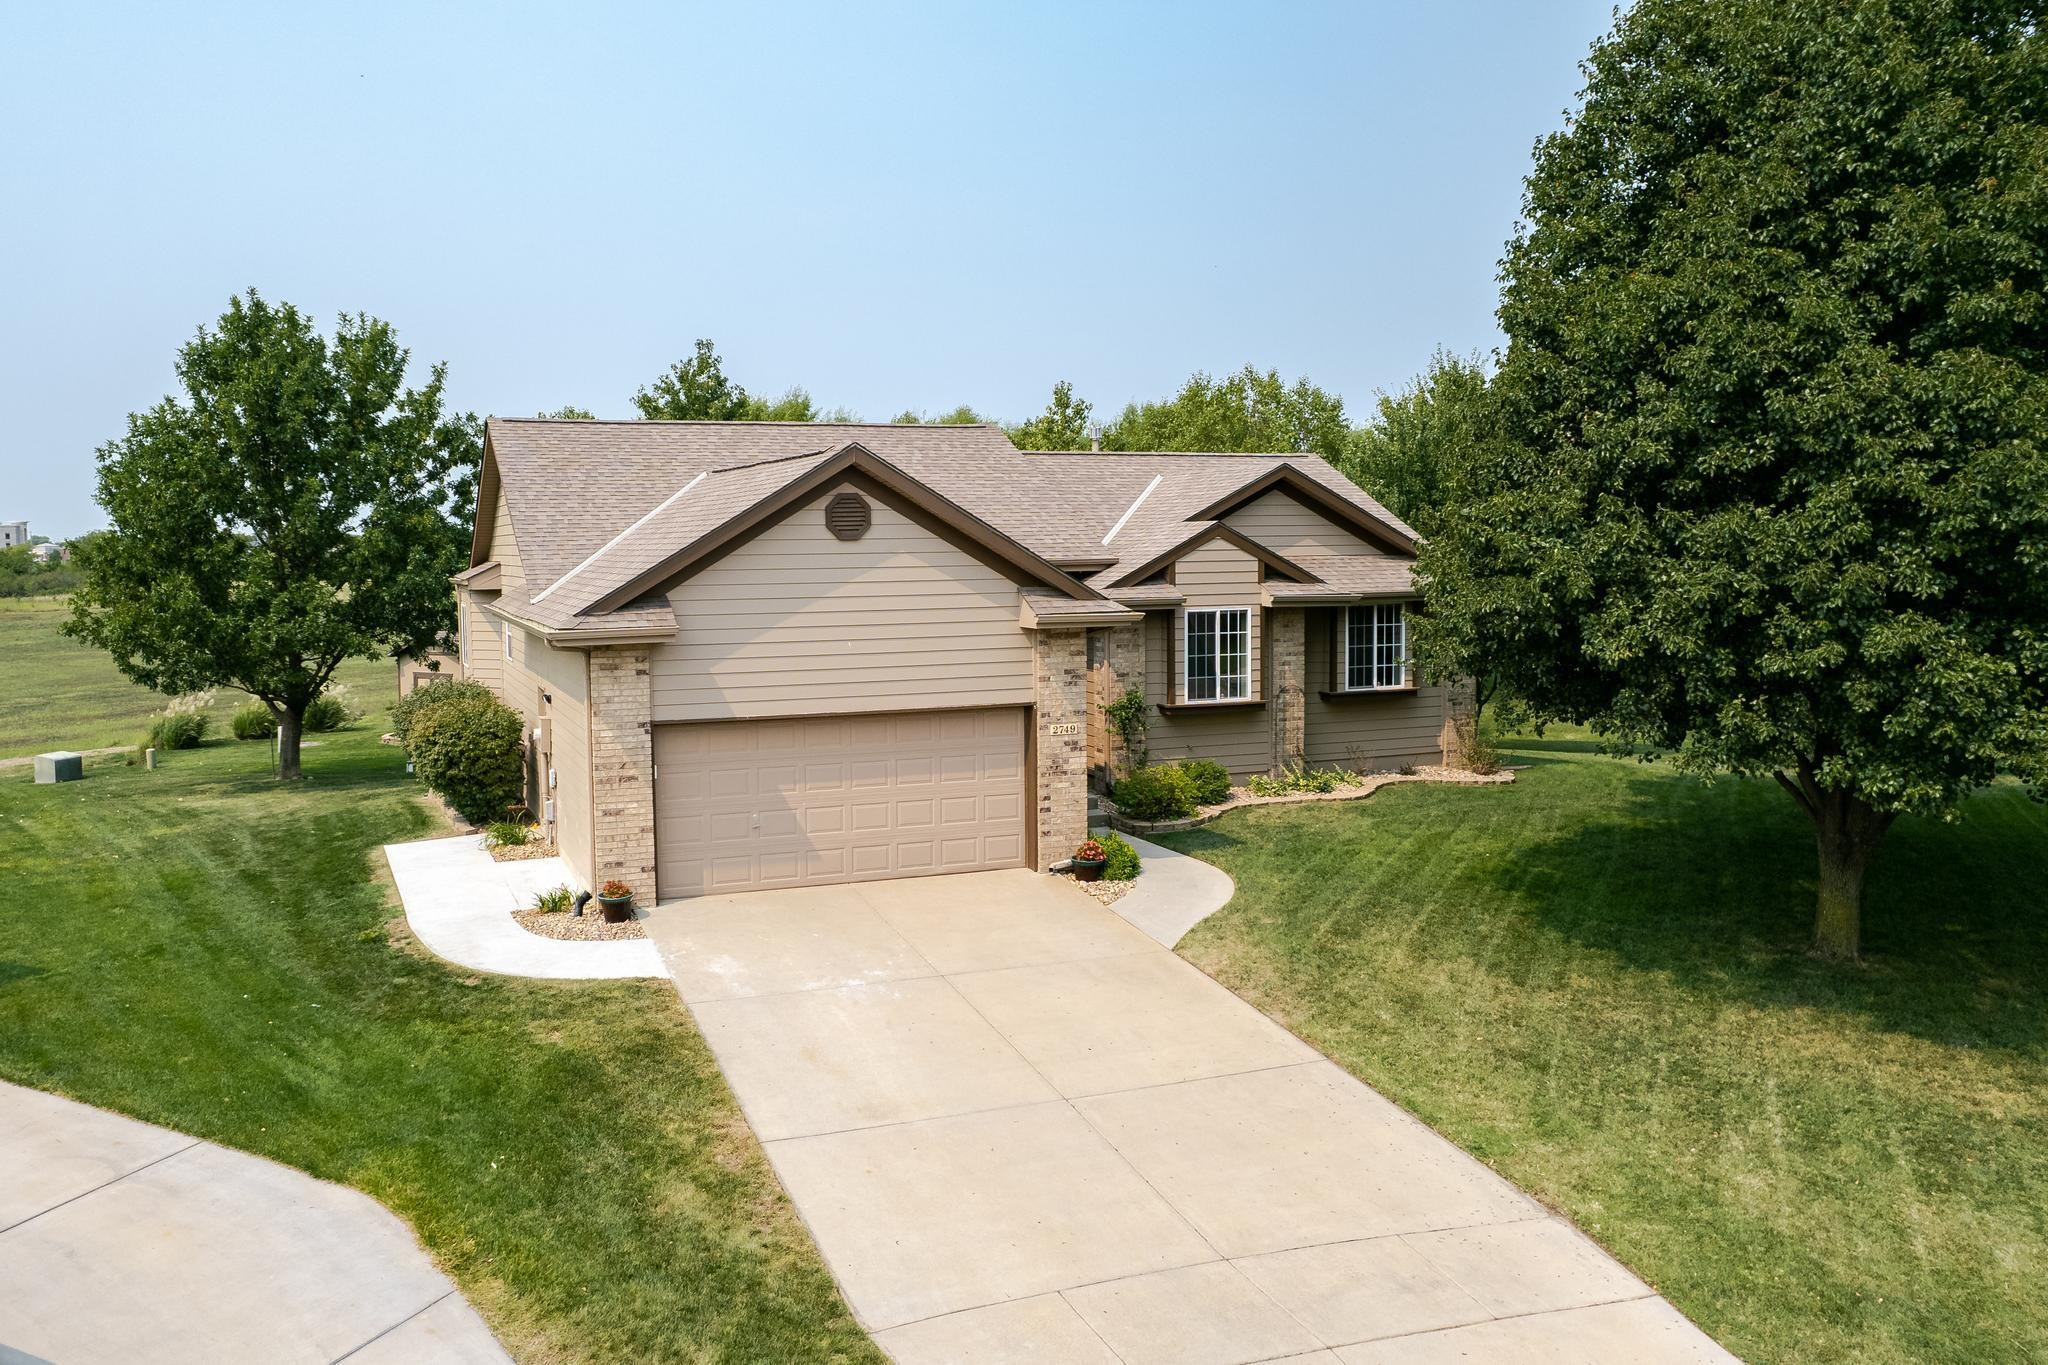 Wonderful ranch home in Bradford North, a neighborhood with great amenities and in the Maize School